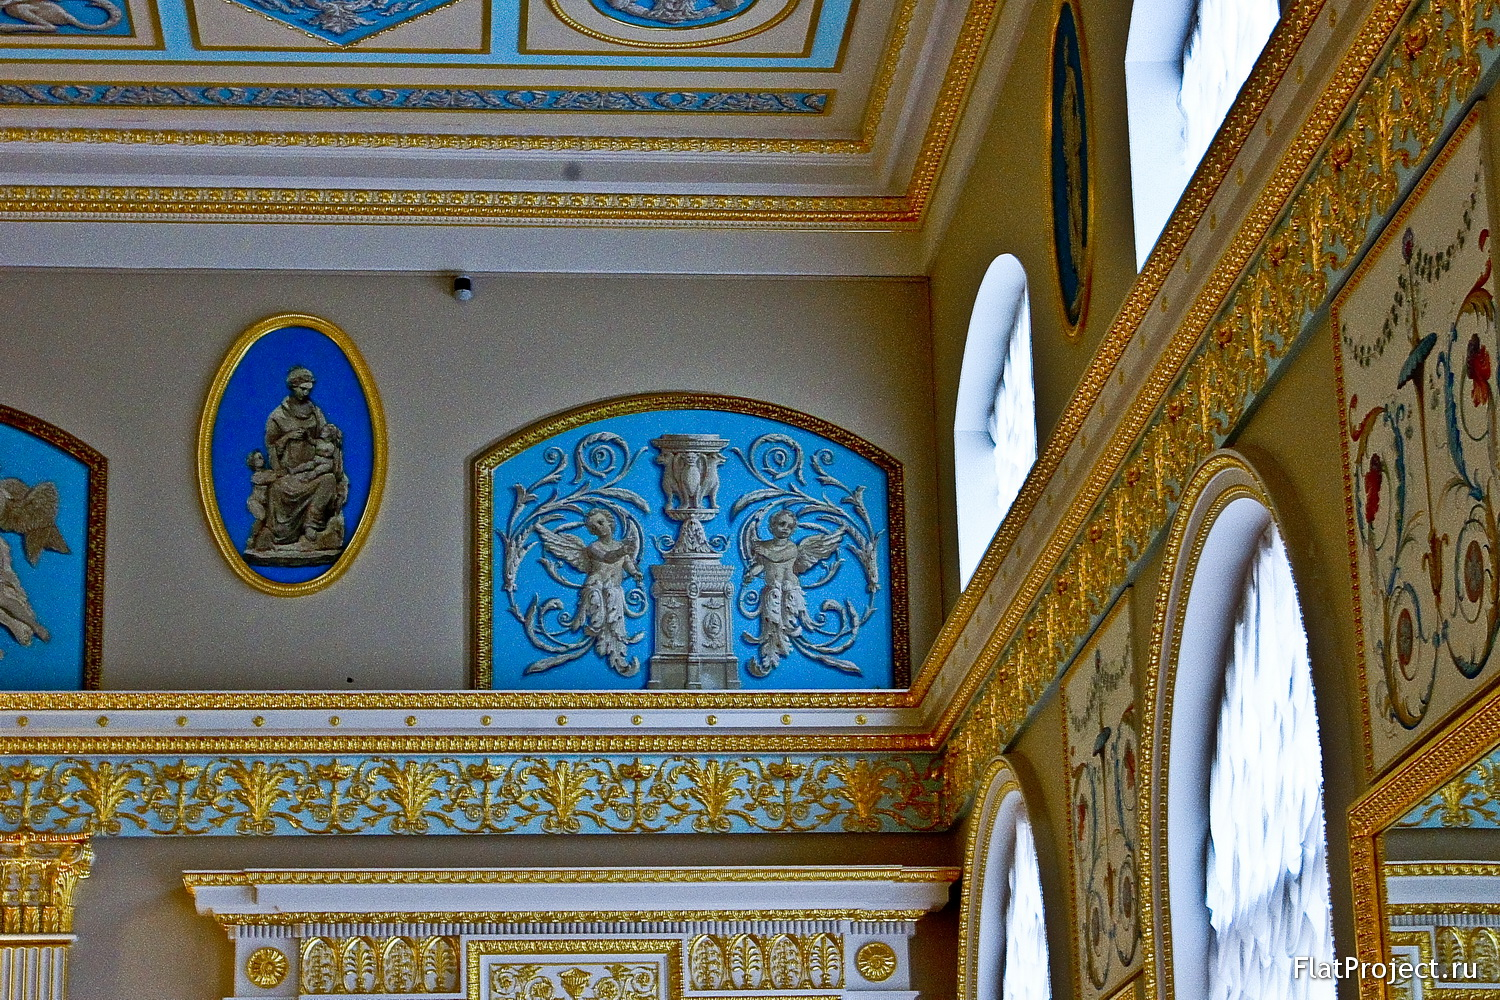 The Catherine Palace interiors – photo 220